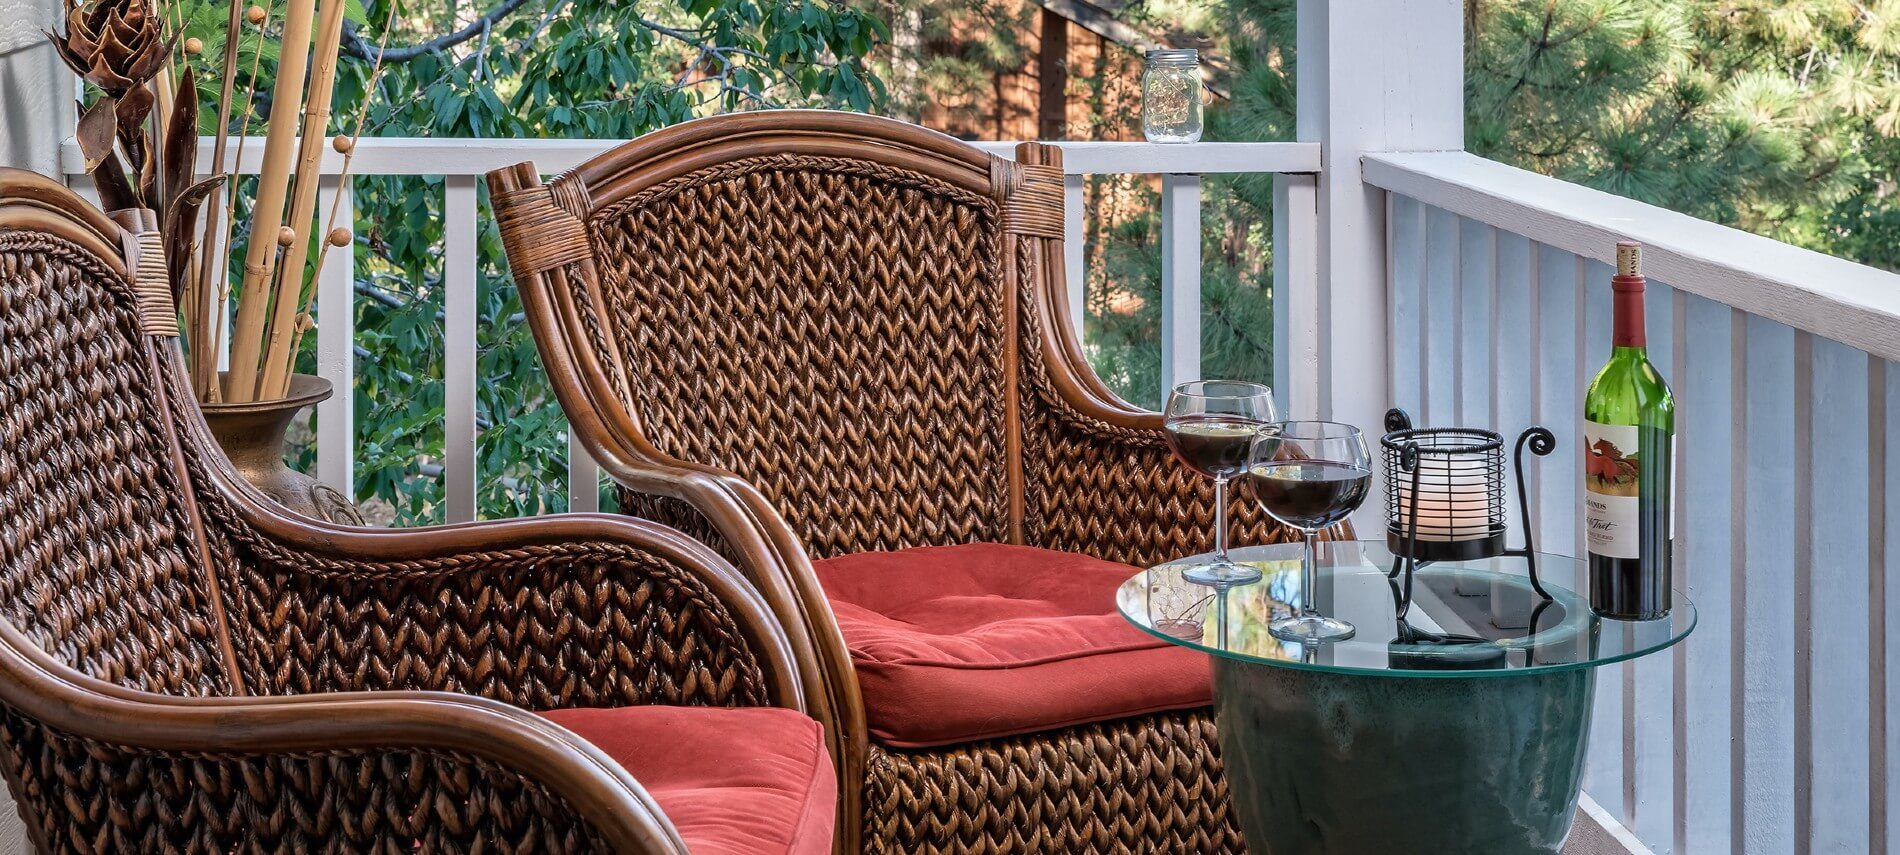 Two brown wicker chairs with red cushions on a porch with white railing and glass side table holding bottle of wine and two glasses half full